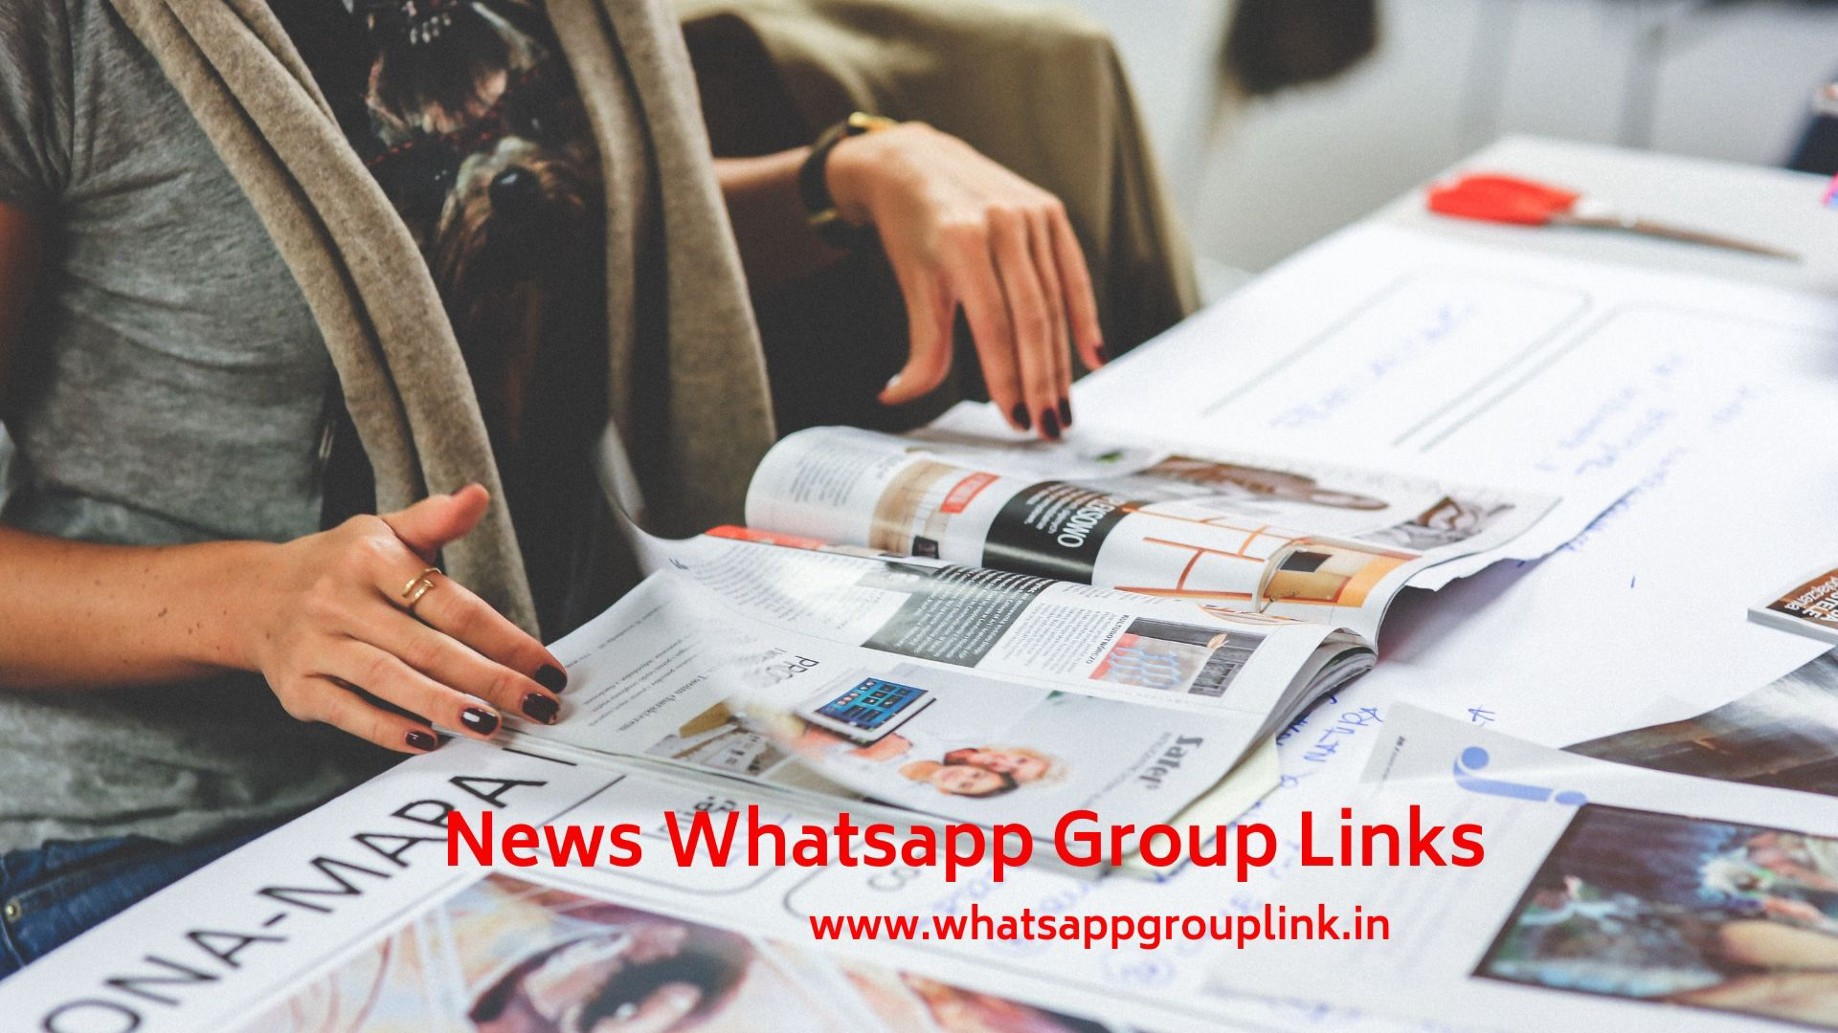 News Whatsapp Group Links - sruthan - Medium